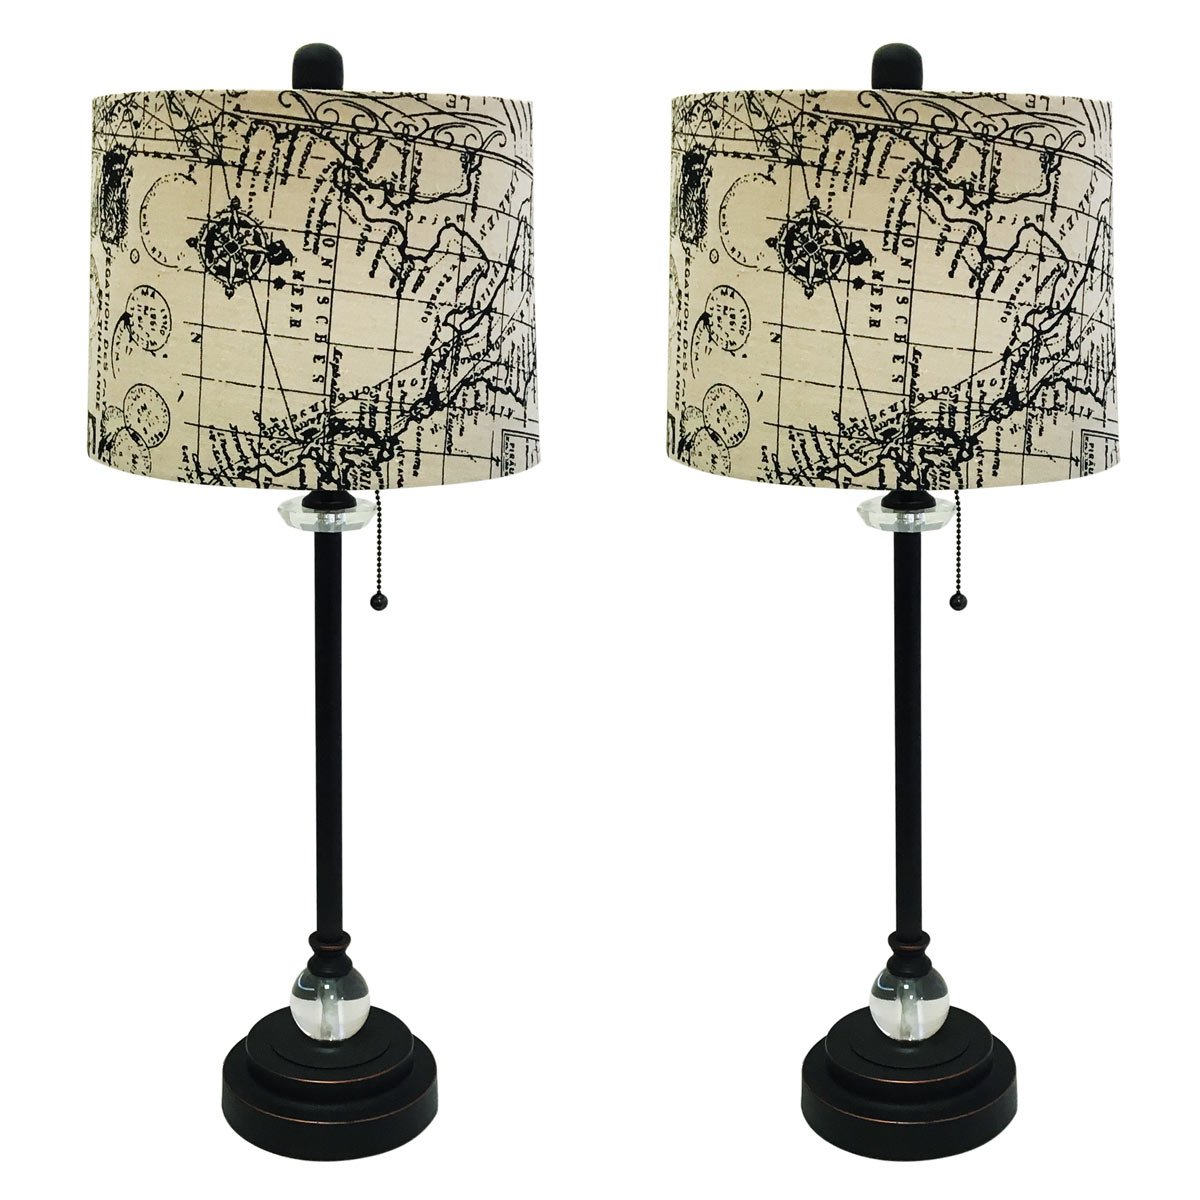 Royal Designs 28'' Crystal and Oil Rub Bronze Lamp with Vintage Map Postcard Design Drum Hardback Lamp Shade, Set of 6 by Royal Designs, Inc